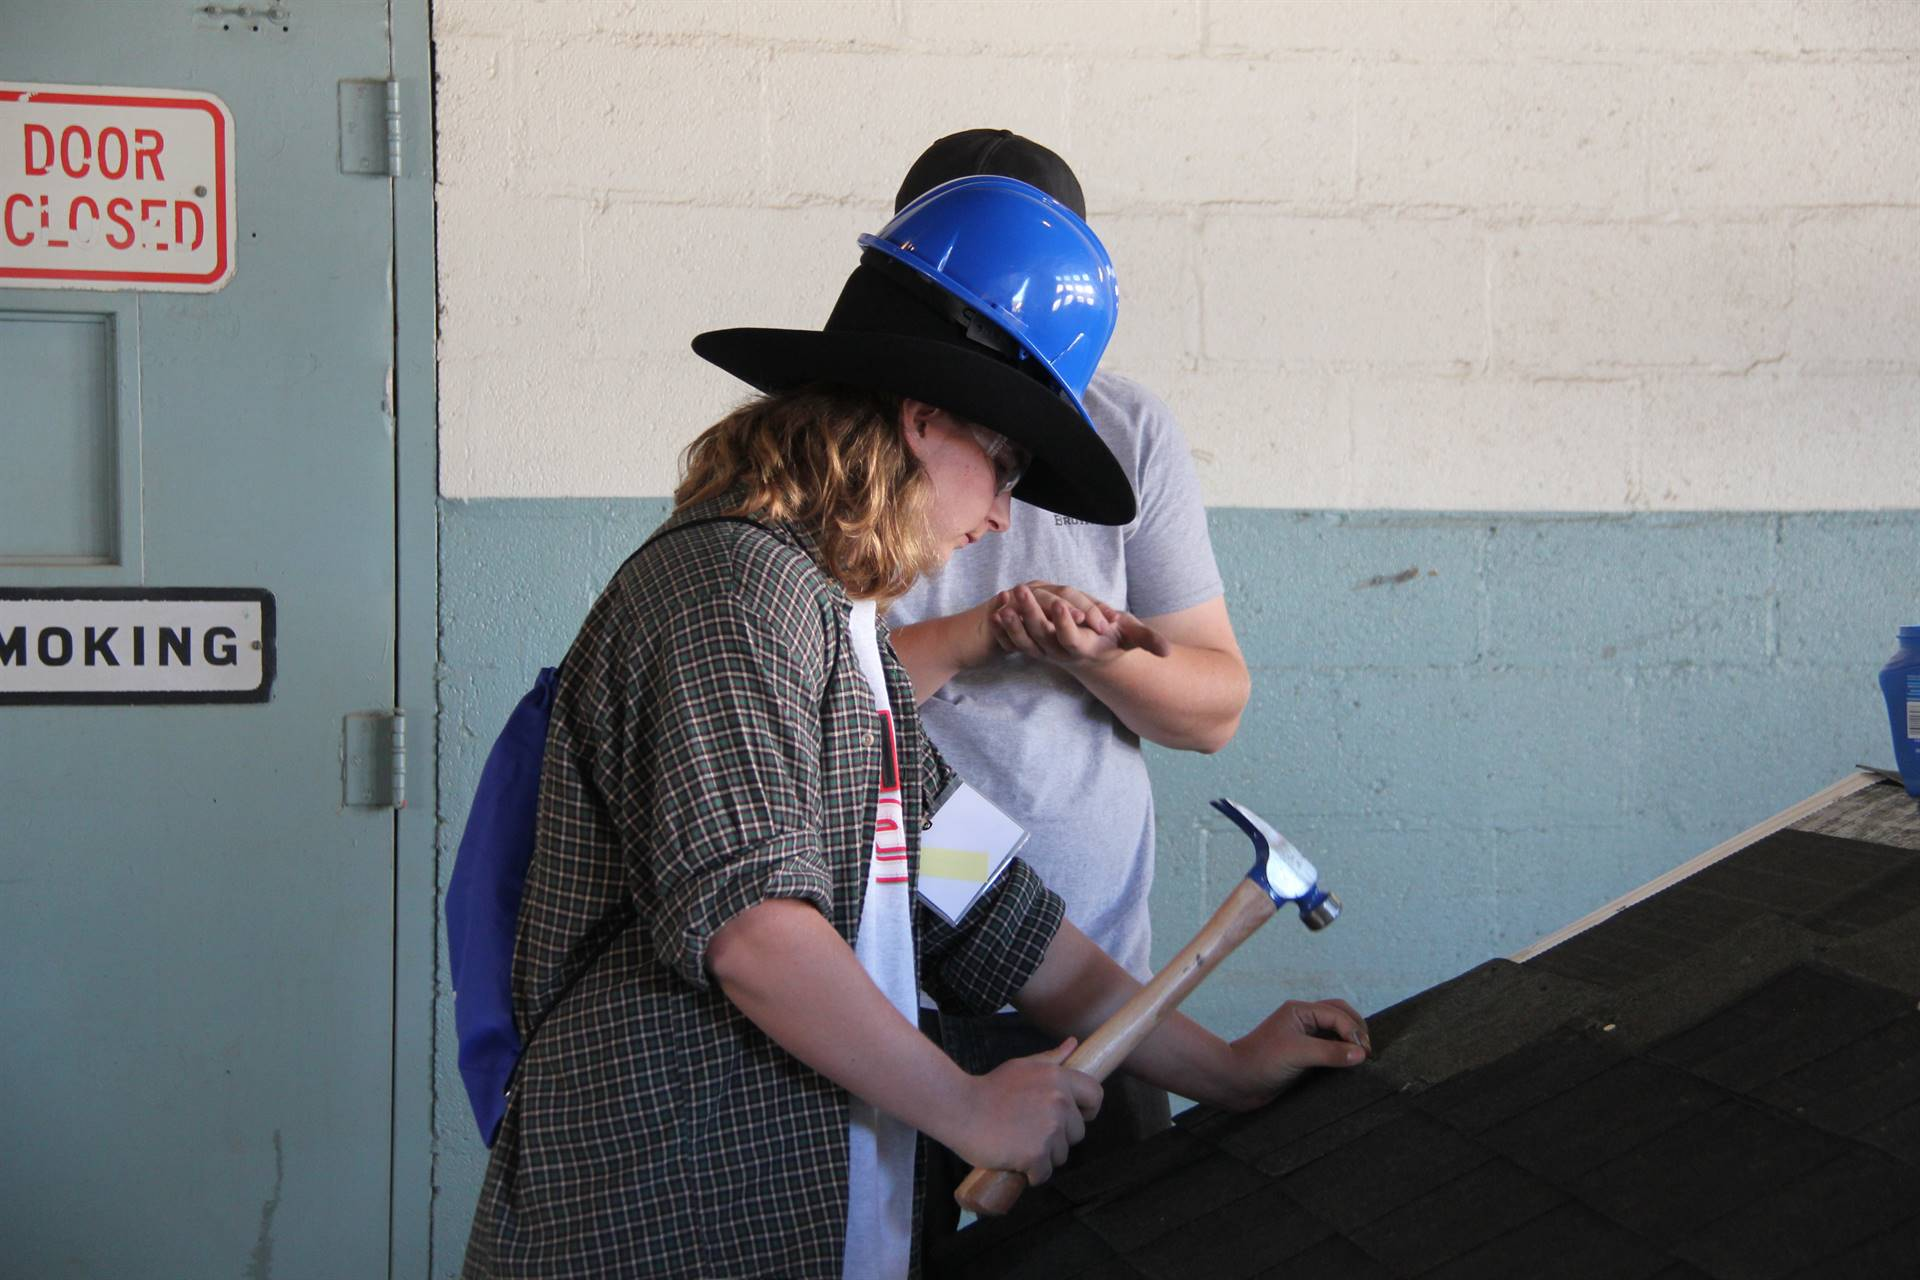 student tries out roofing on a sample roof with hammer and nail